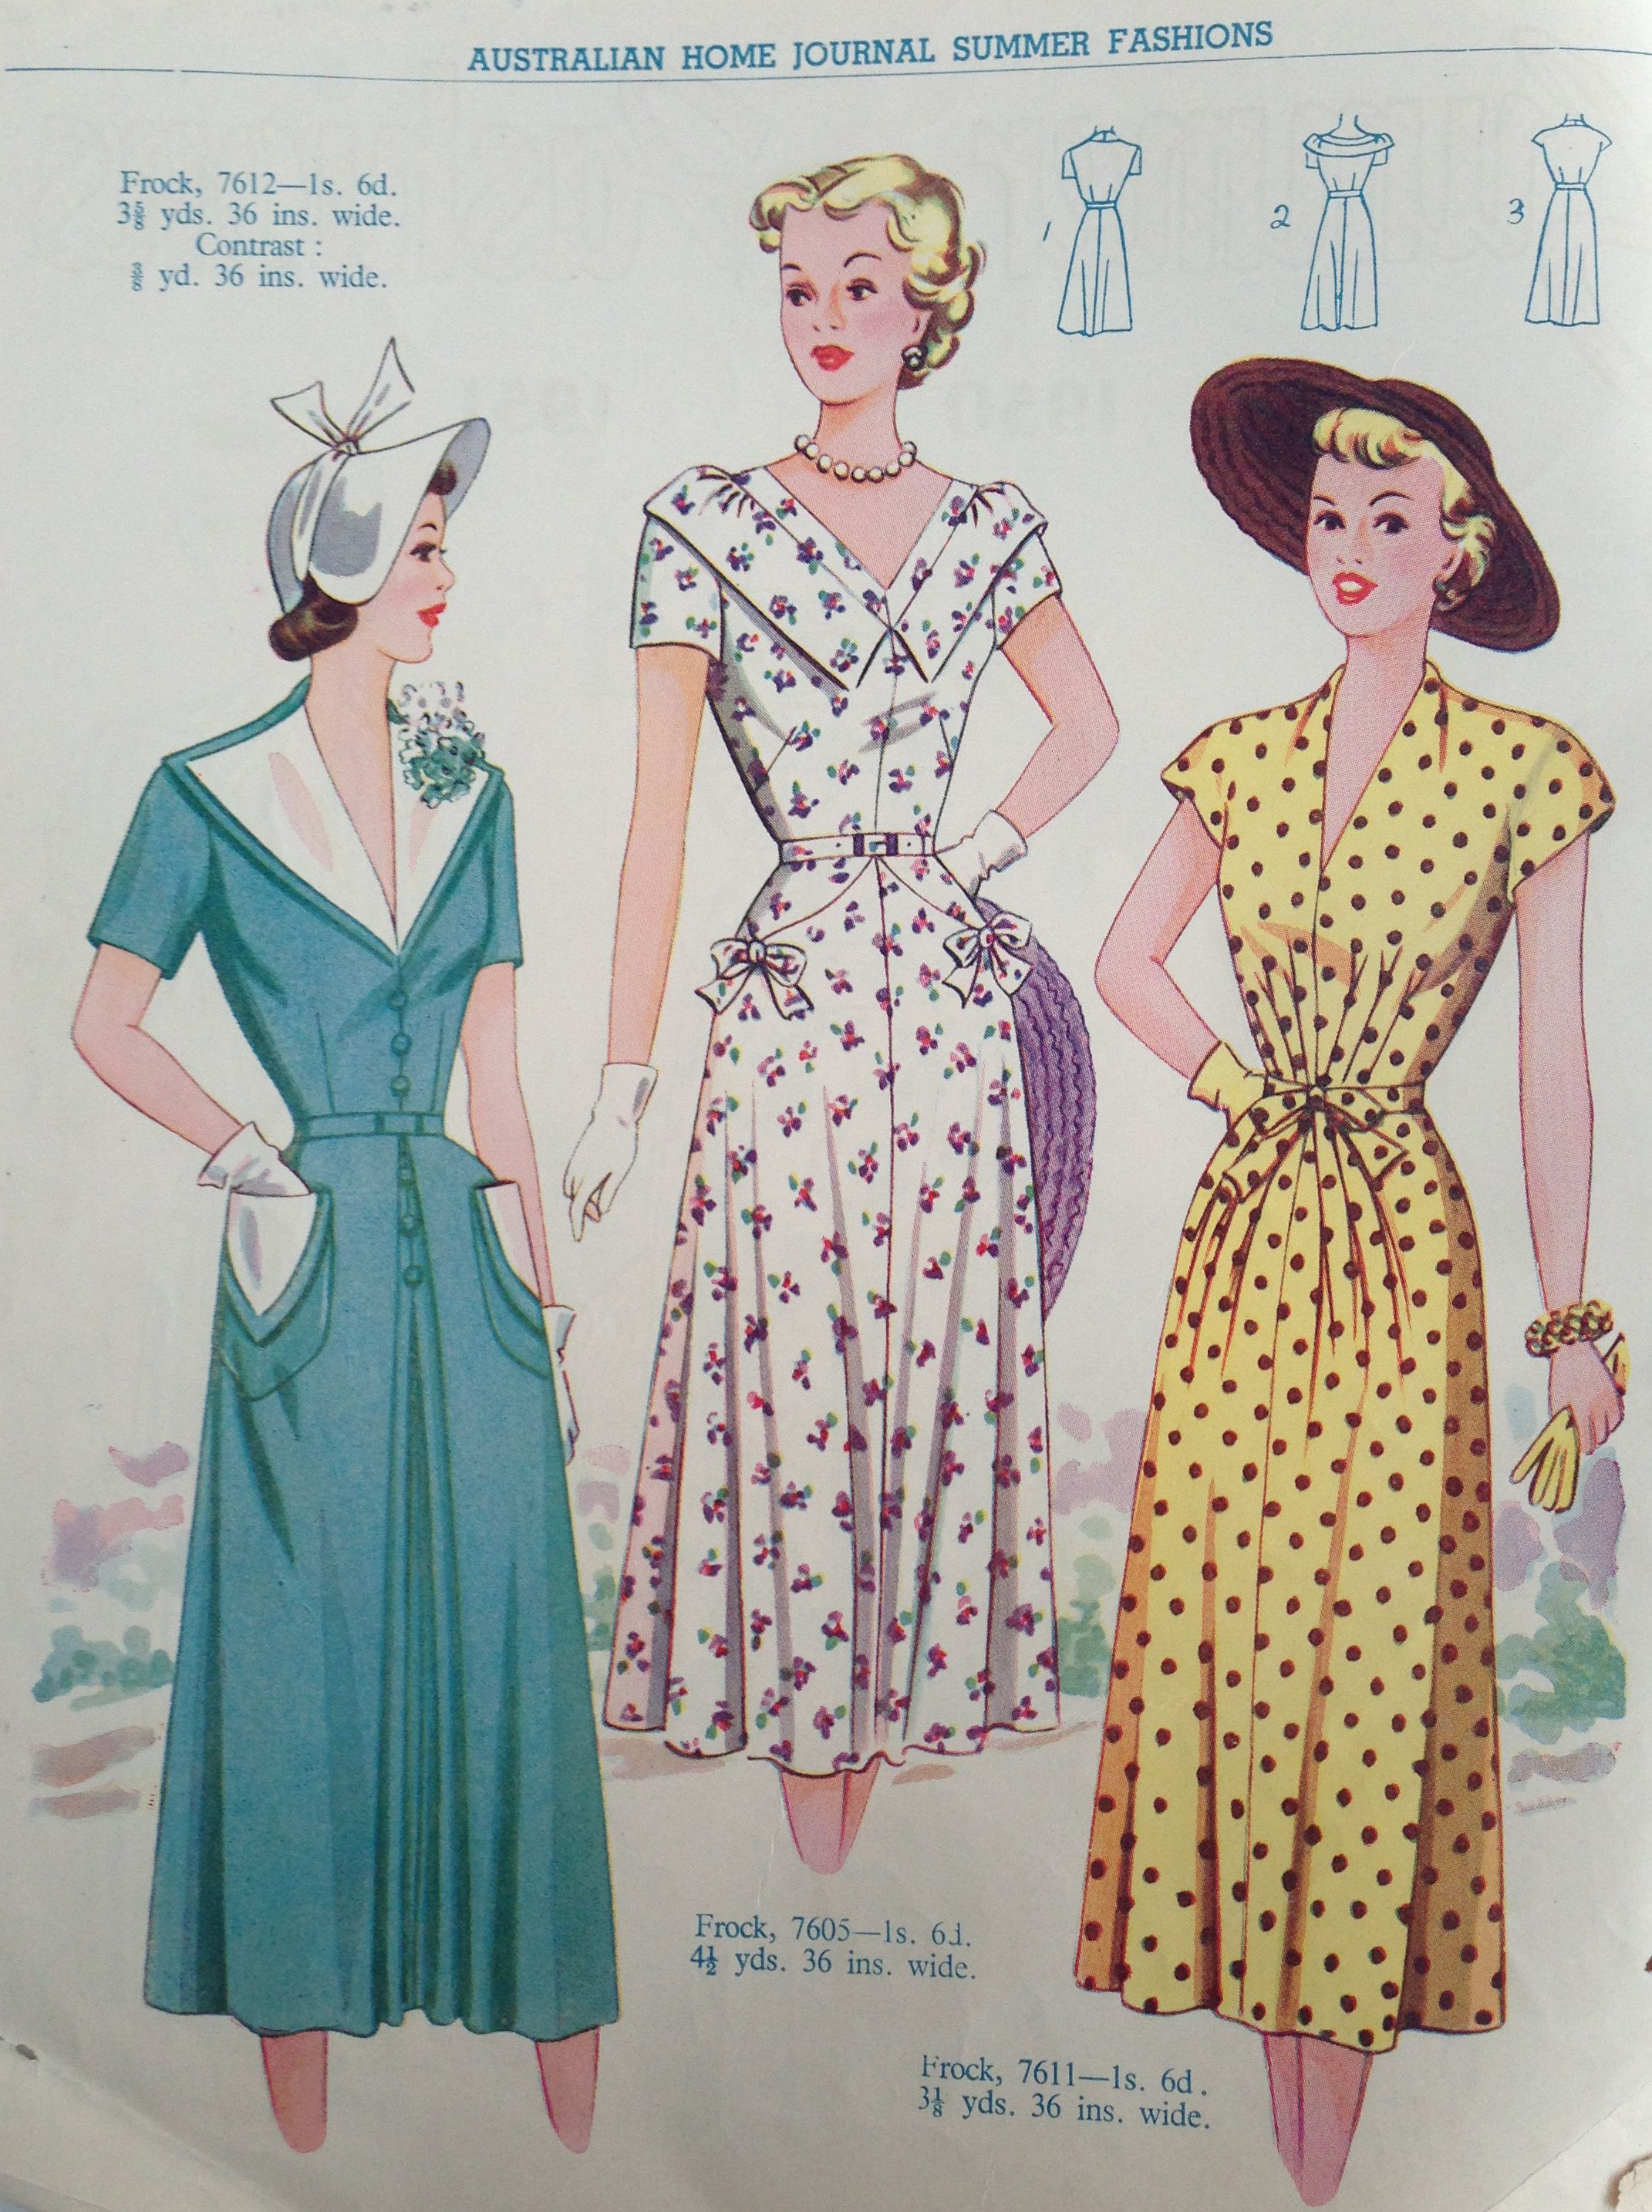 1950s fashion in australia Your 1950s: fashion and leisure  thurma cohen, bedford, i was a teenager at  the birth of rock 'n roll - elvis buddy holly little richard what.